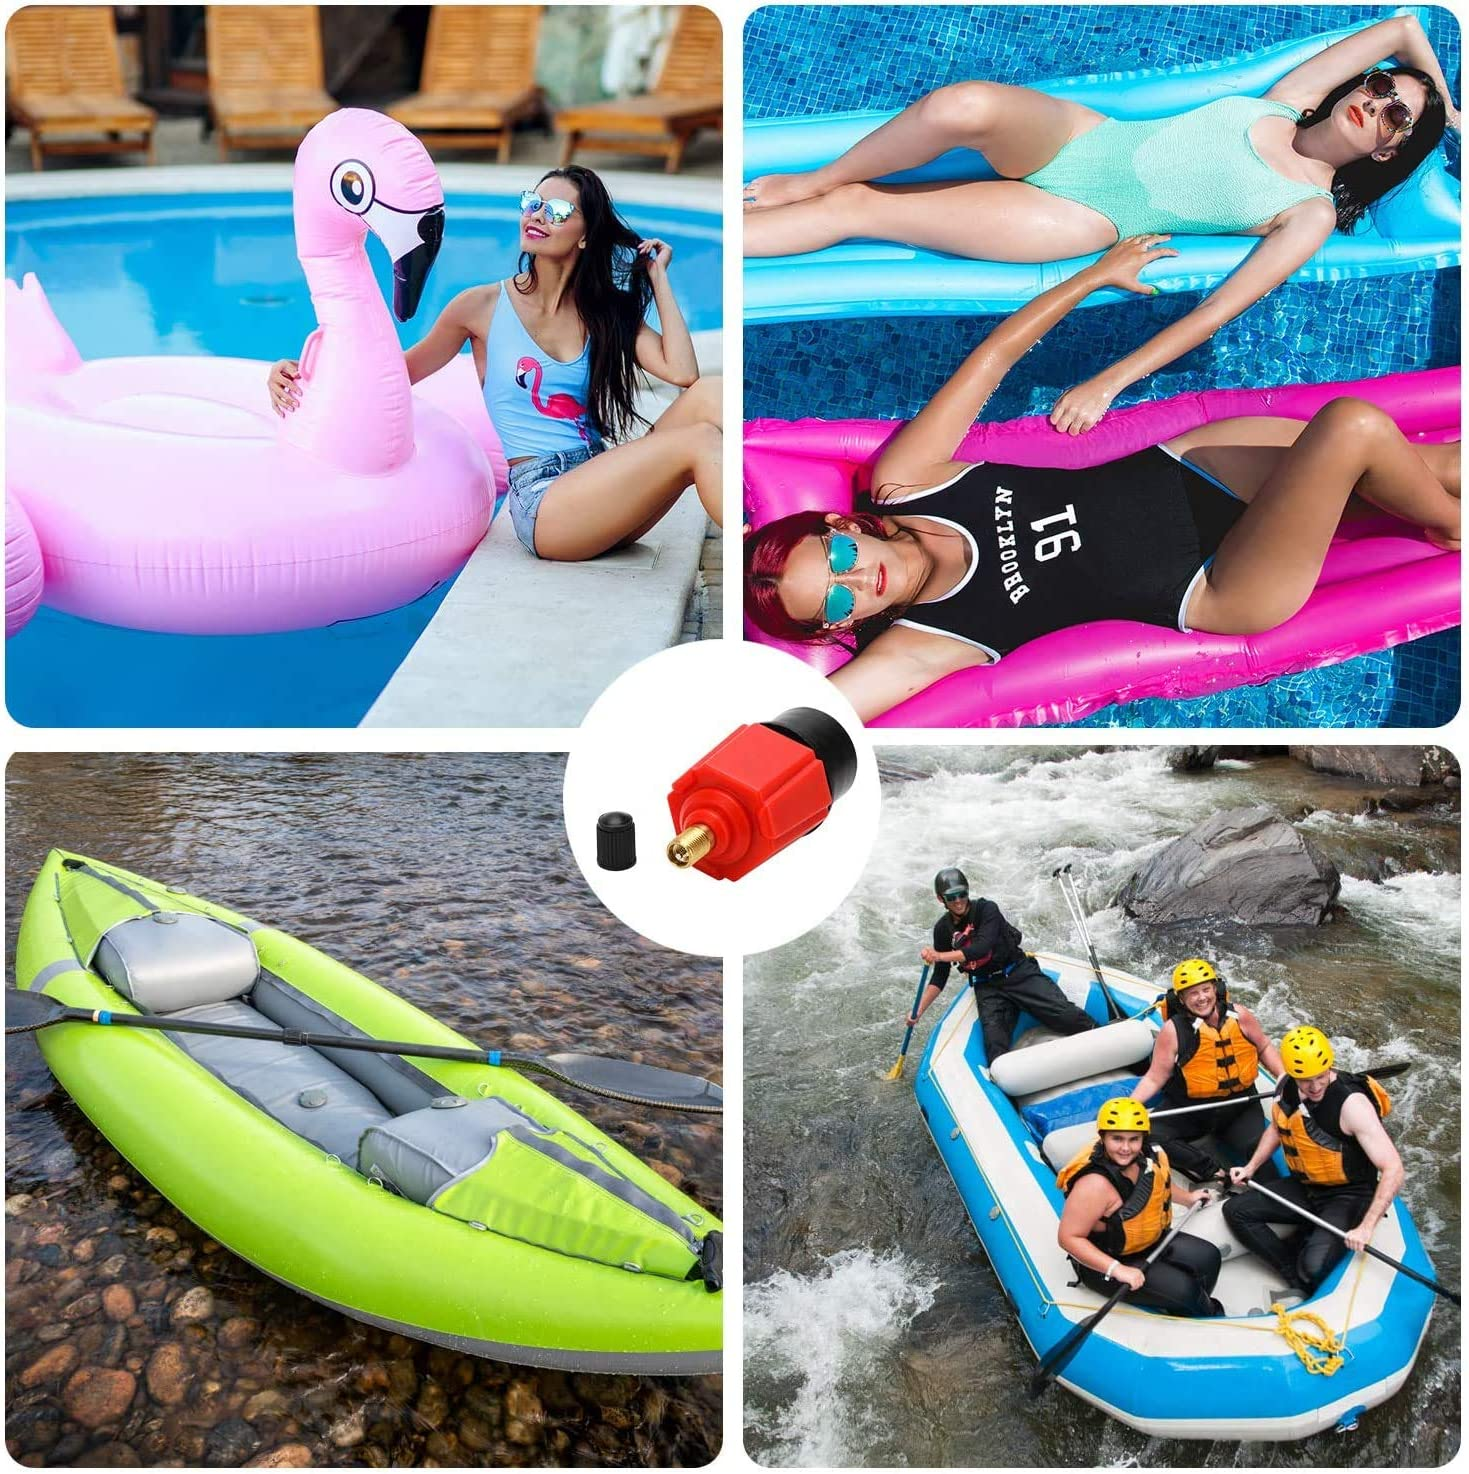 Inflatable Bed Inflatable SUP Pump Adaptor Compressor Air Valve Converter Stand Up Paddle Board Multifunction SUP Valve Adapter with 4 Air Valve Nozzlesz Air Valve Adaptor for Inflatable Boat Red